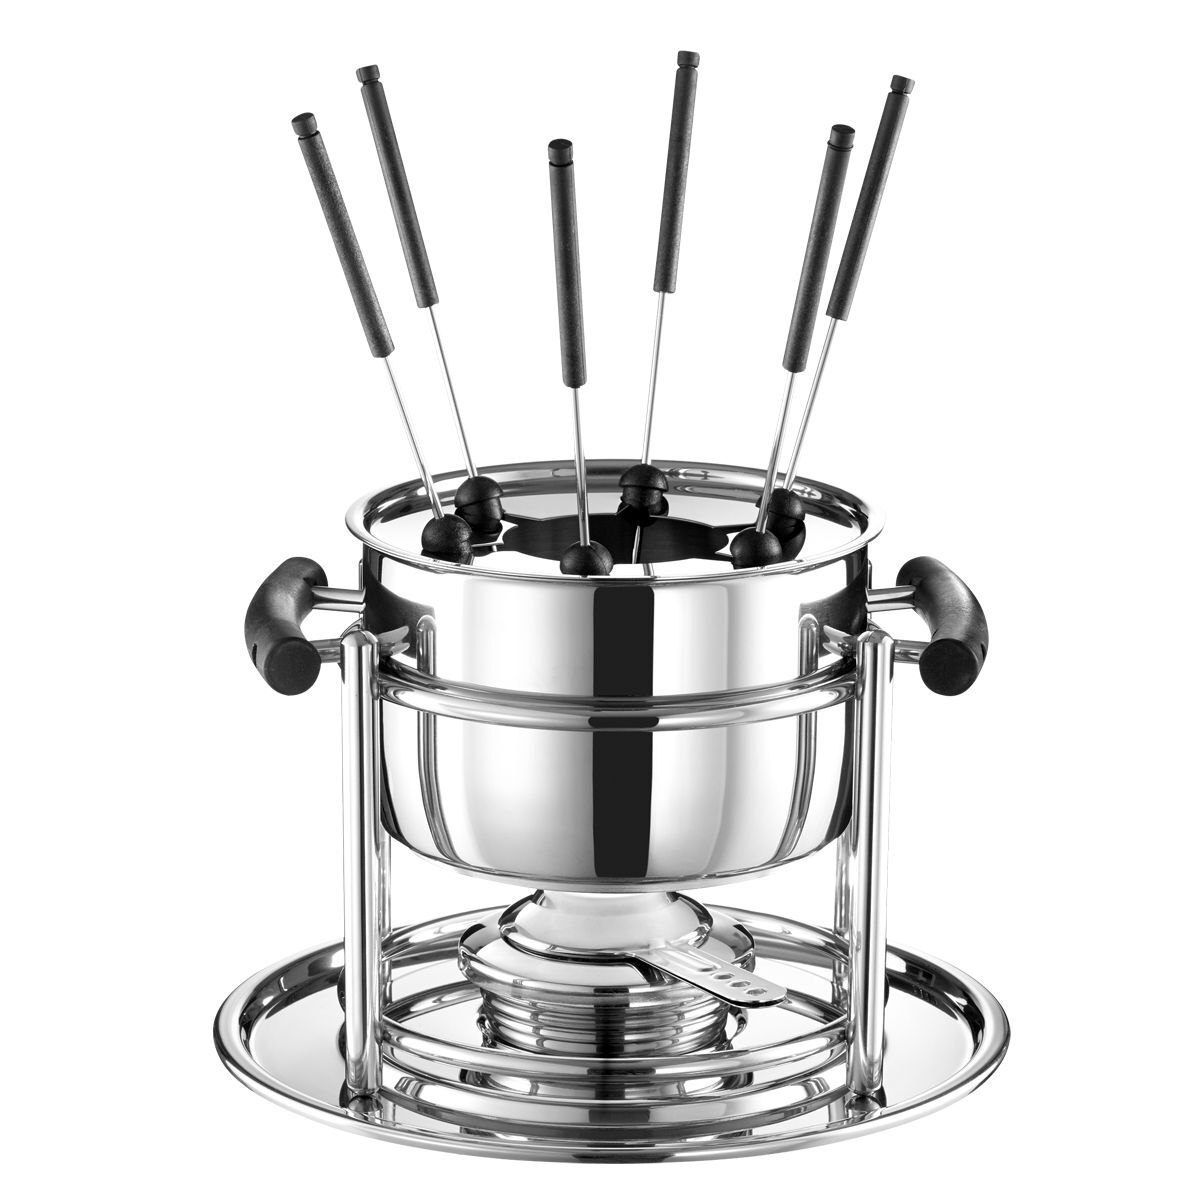 wmf fondue set allegro 11 teilig karstadt online shop. Black Bedroom Furniture Sets. Home Design Ideas